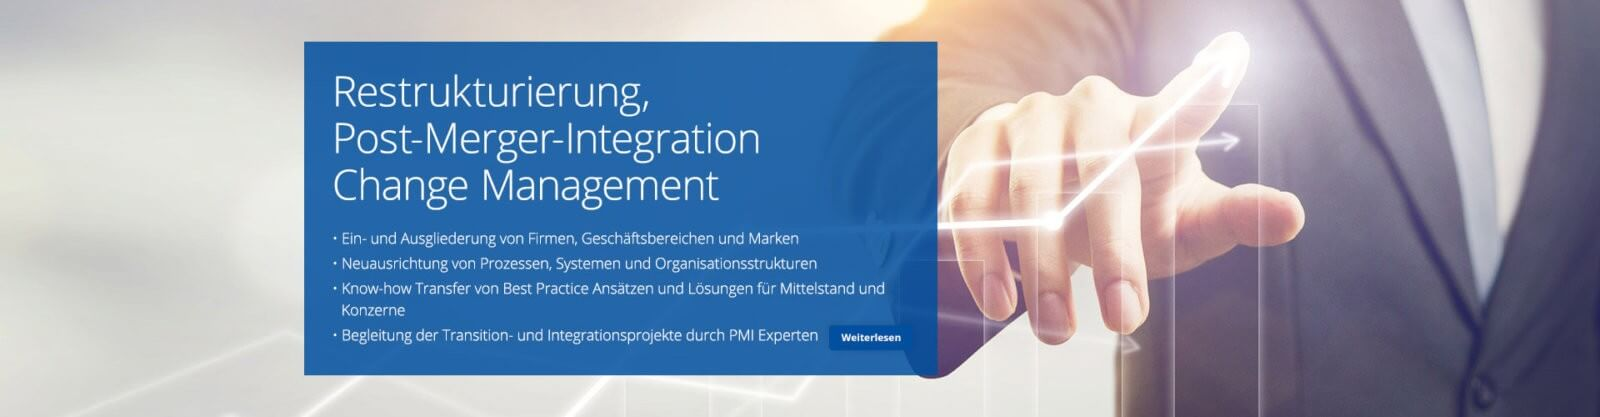 https://www.executive-solutions.de/projektmanagement